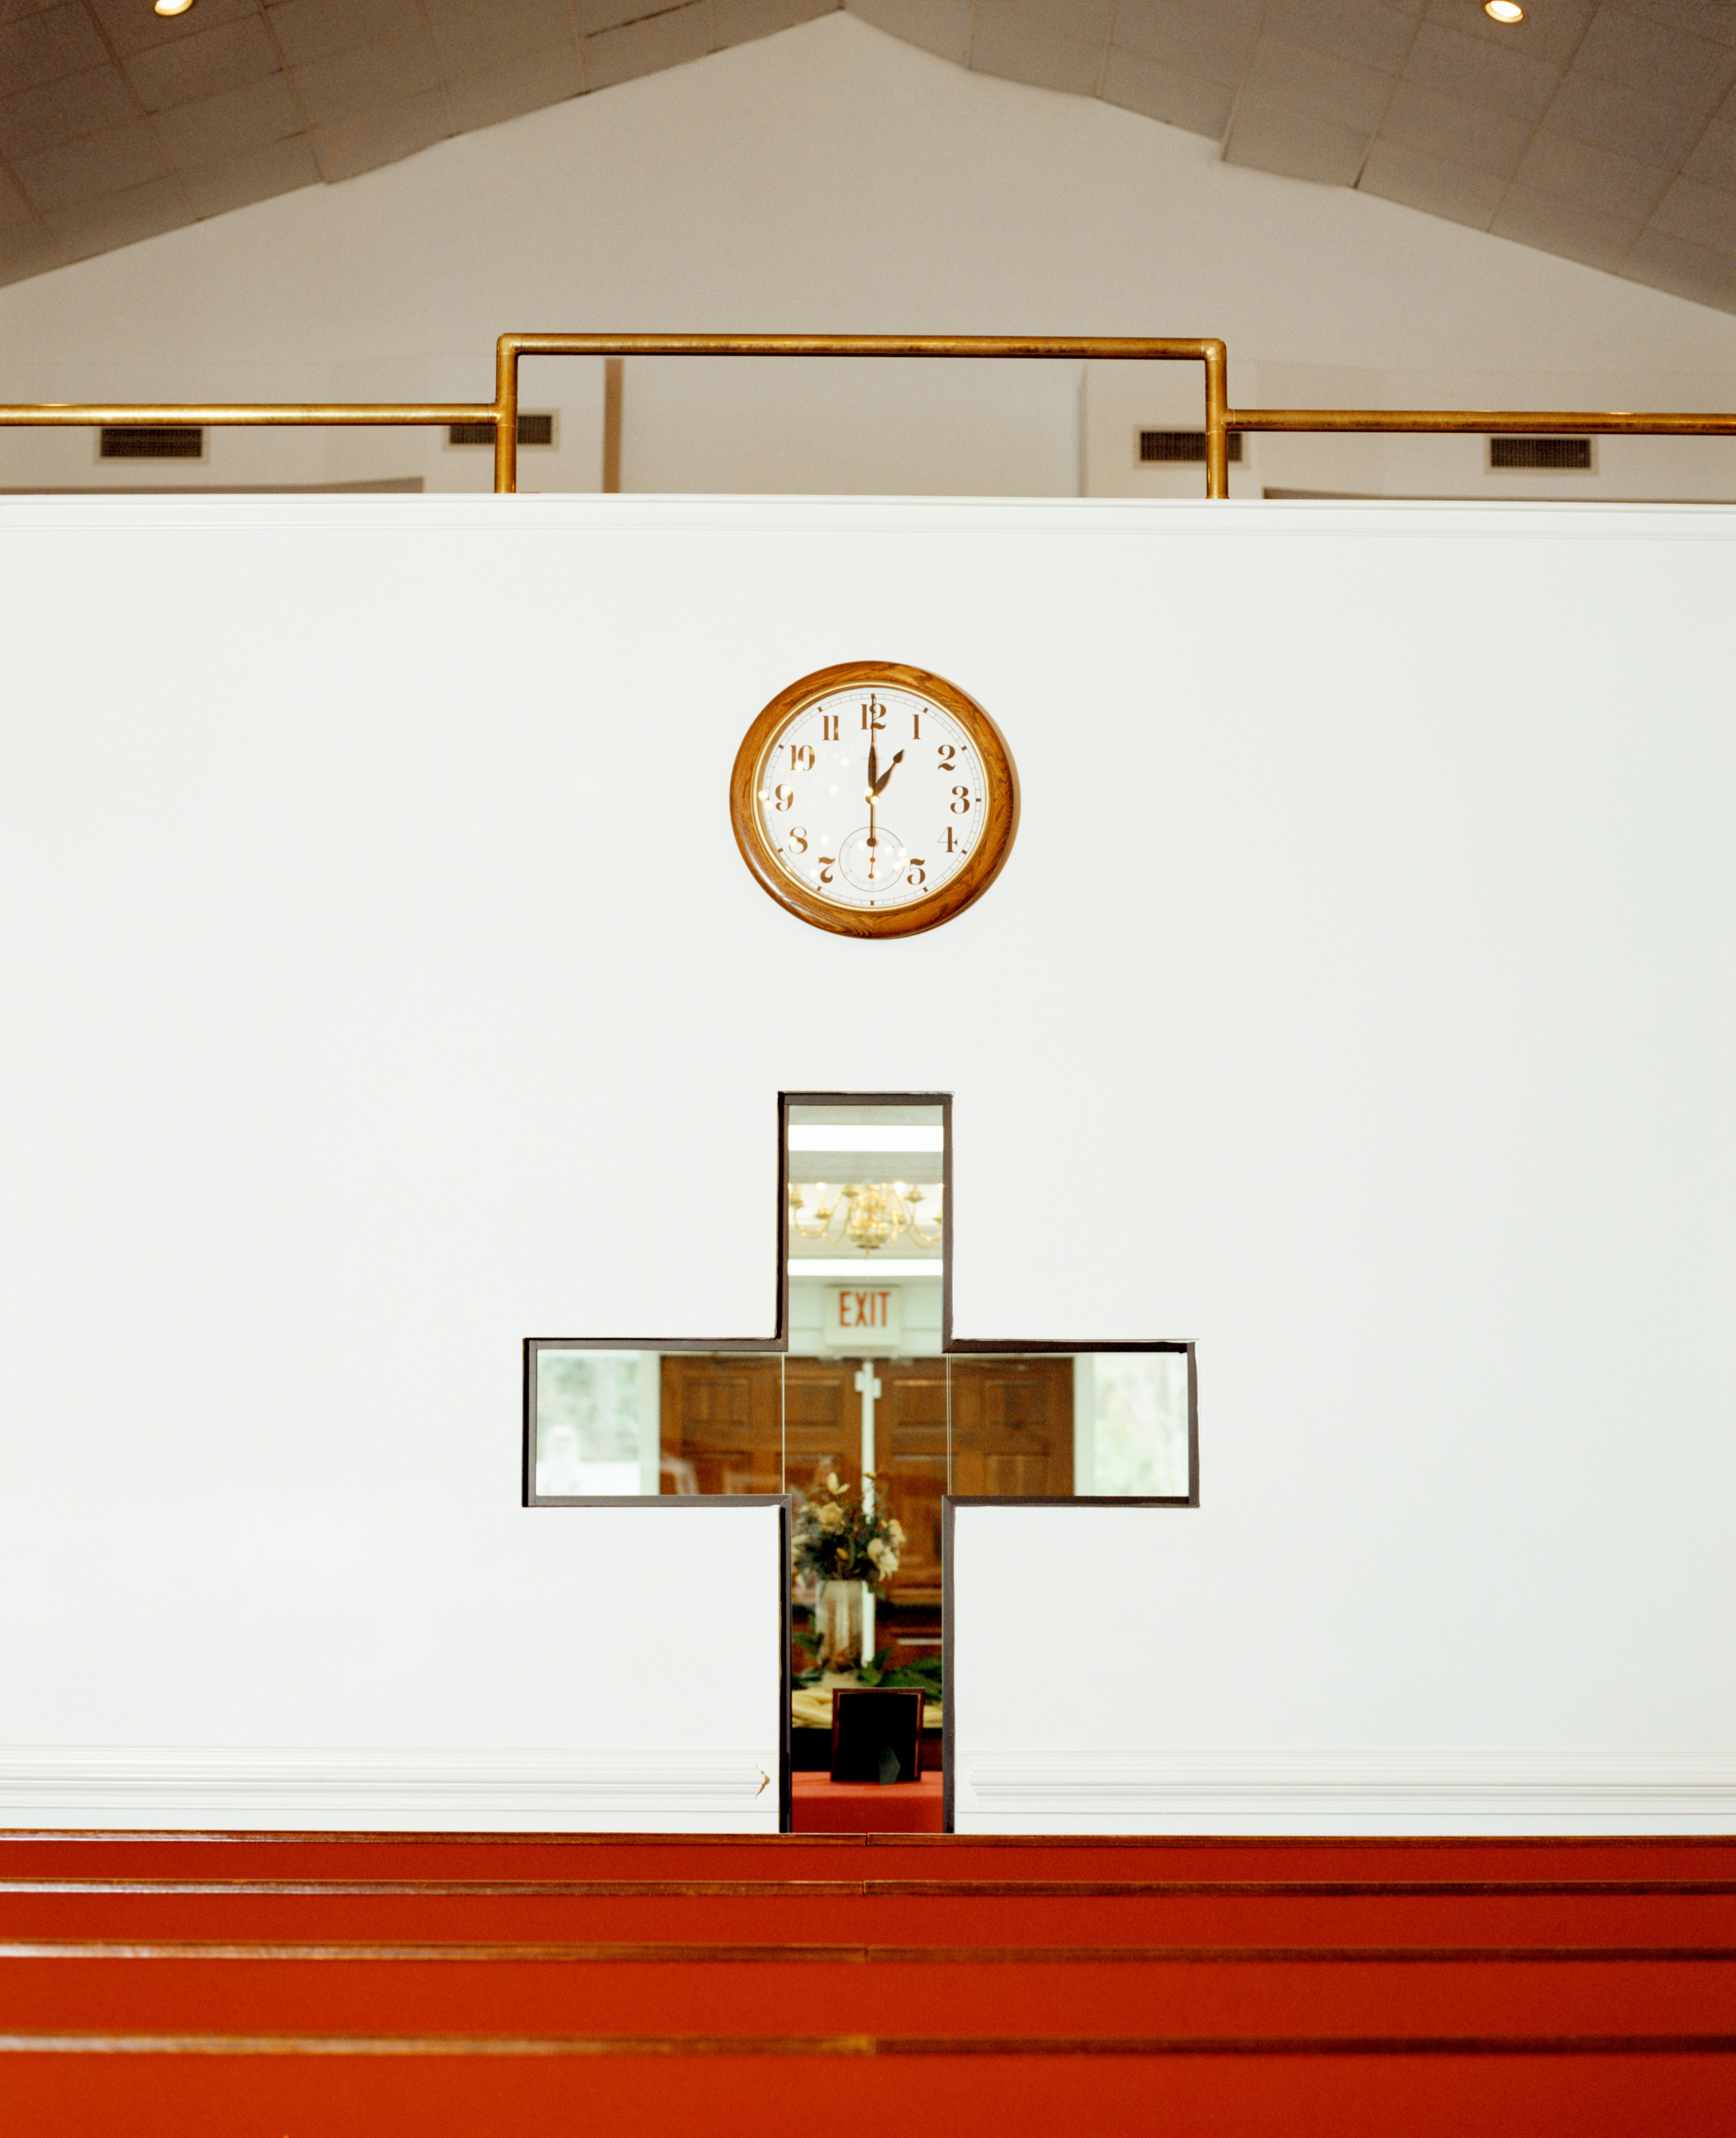 A cross shaped mirror hangs on the wall below a clock at the New Nation Ministry in Columbia, South Carolina.